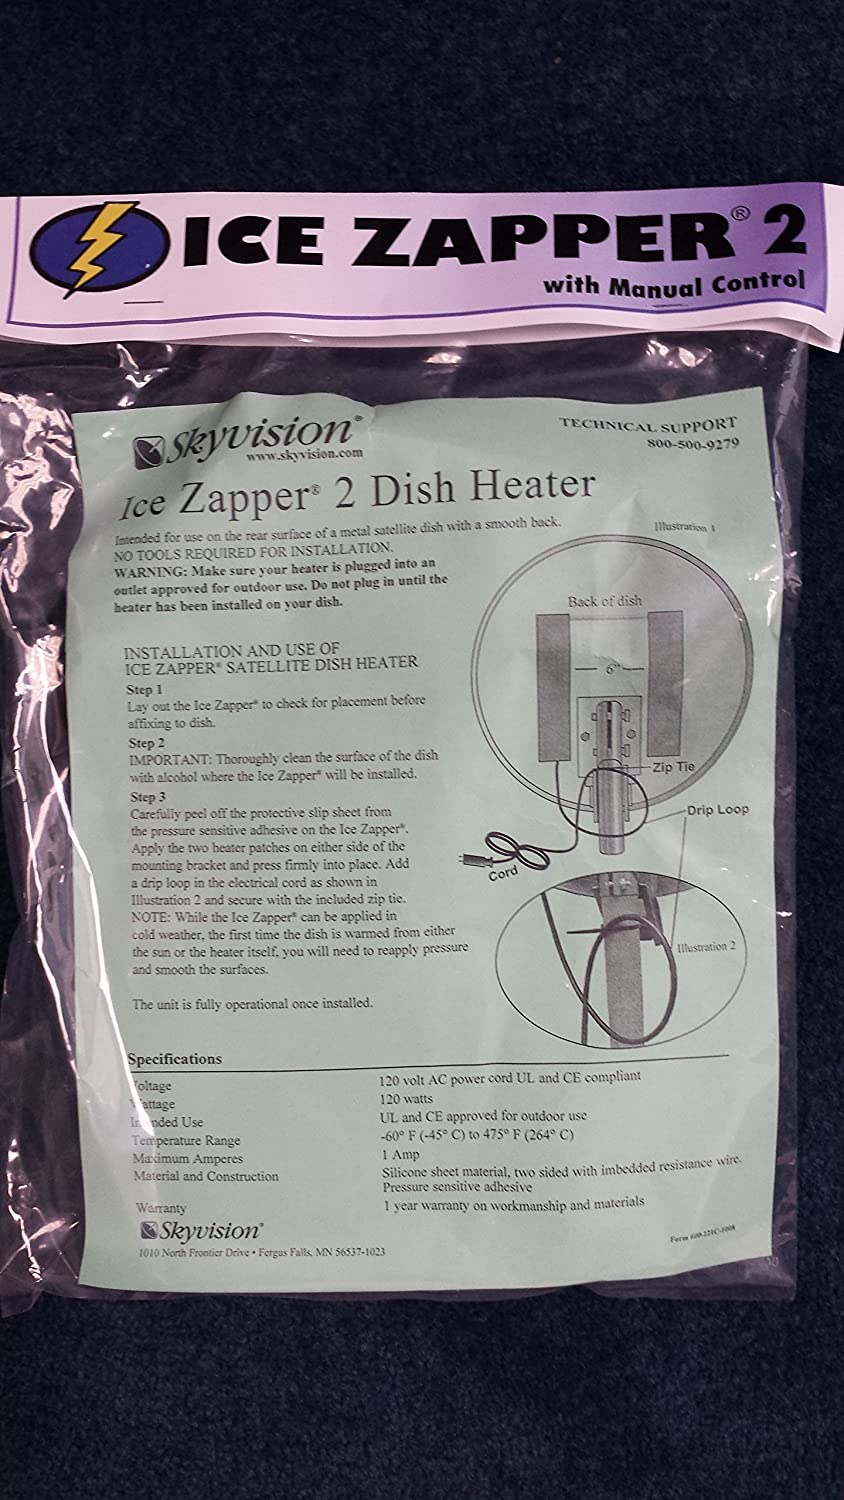 Ice Zapper 2 Satellite Dish Heater Kit w/ Manual Control for 46cm to 1.2 Meter Dish Antennas